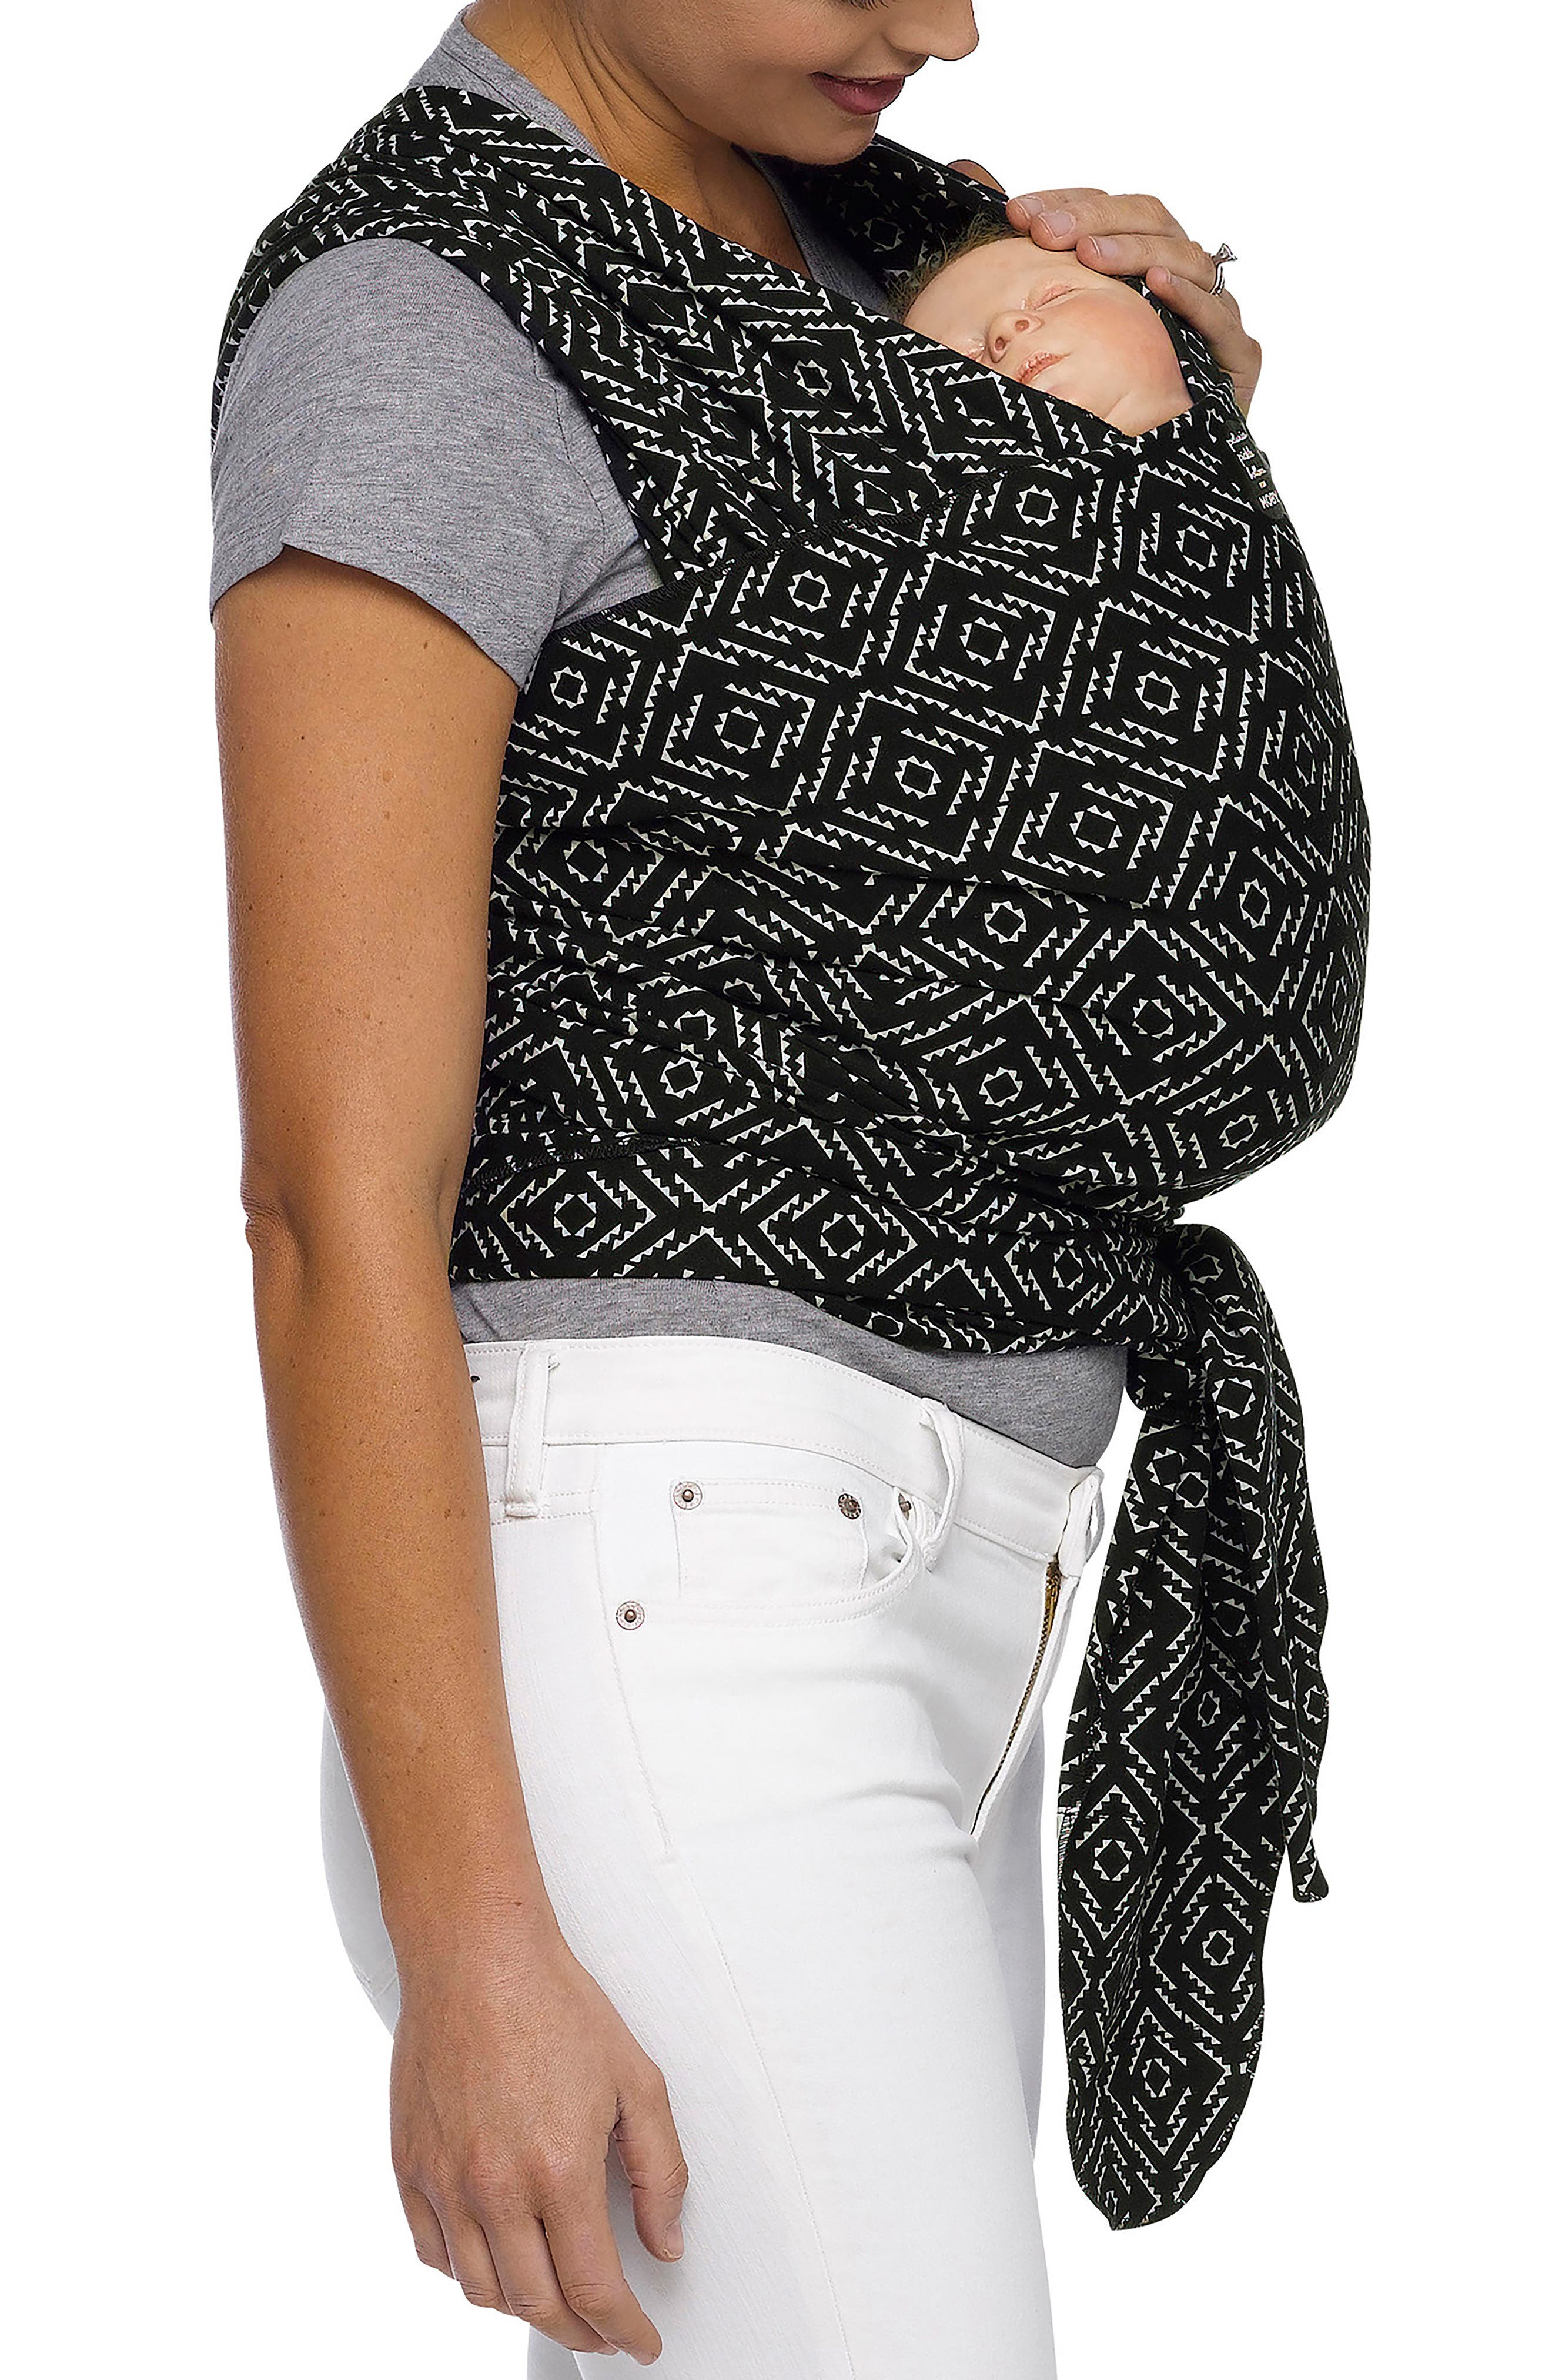 x Petunia Pickle Bottom Baby Carrier,                             Alternate thumbnail 3, color,                             STROLLING